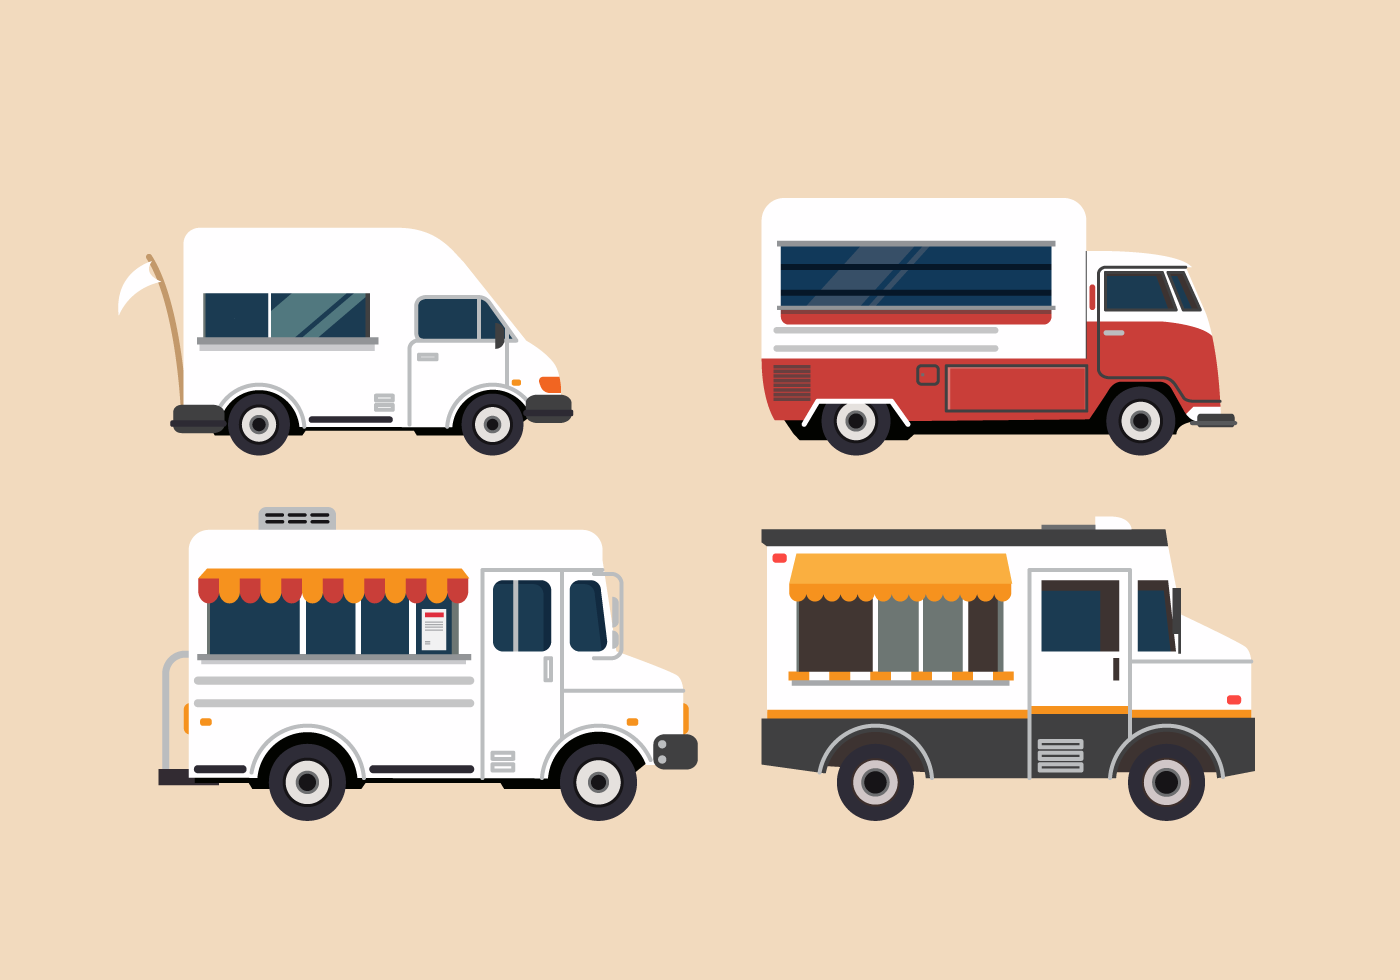 Free Vector Food Truck Illustration Set - Download Free ...